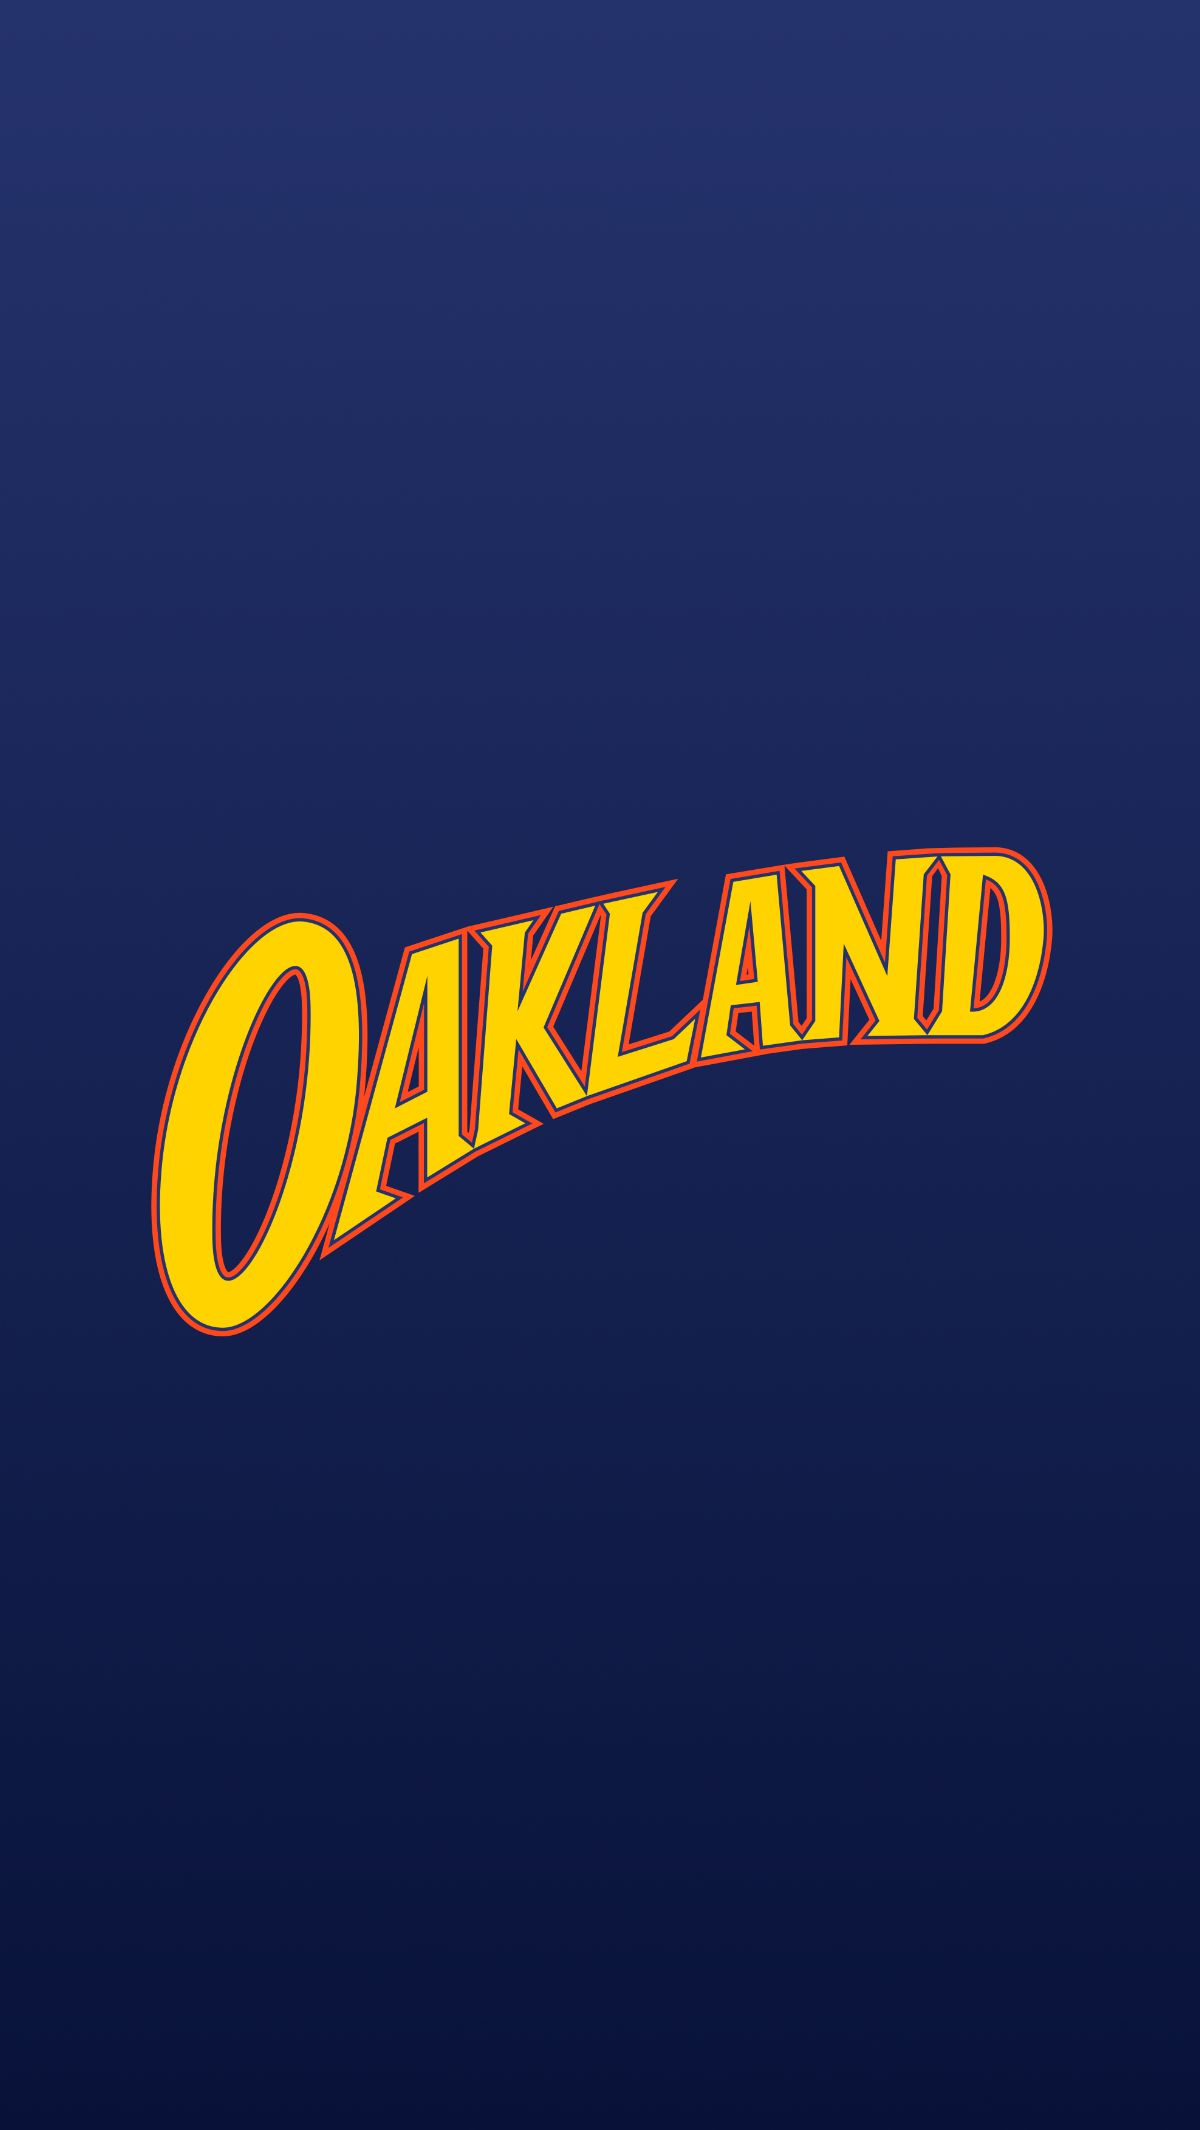 Oakland Warriors Golden State Basketball Sticker By Sportsign In 2021 Golden State Warriors Wallpaper Golden State Basketball Nba Warriors